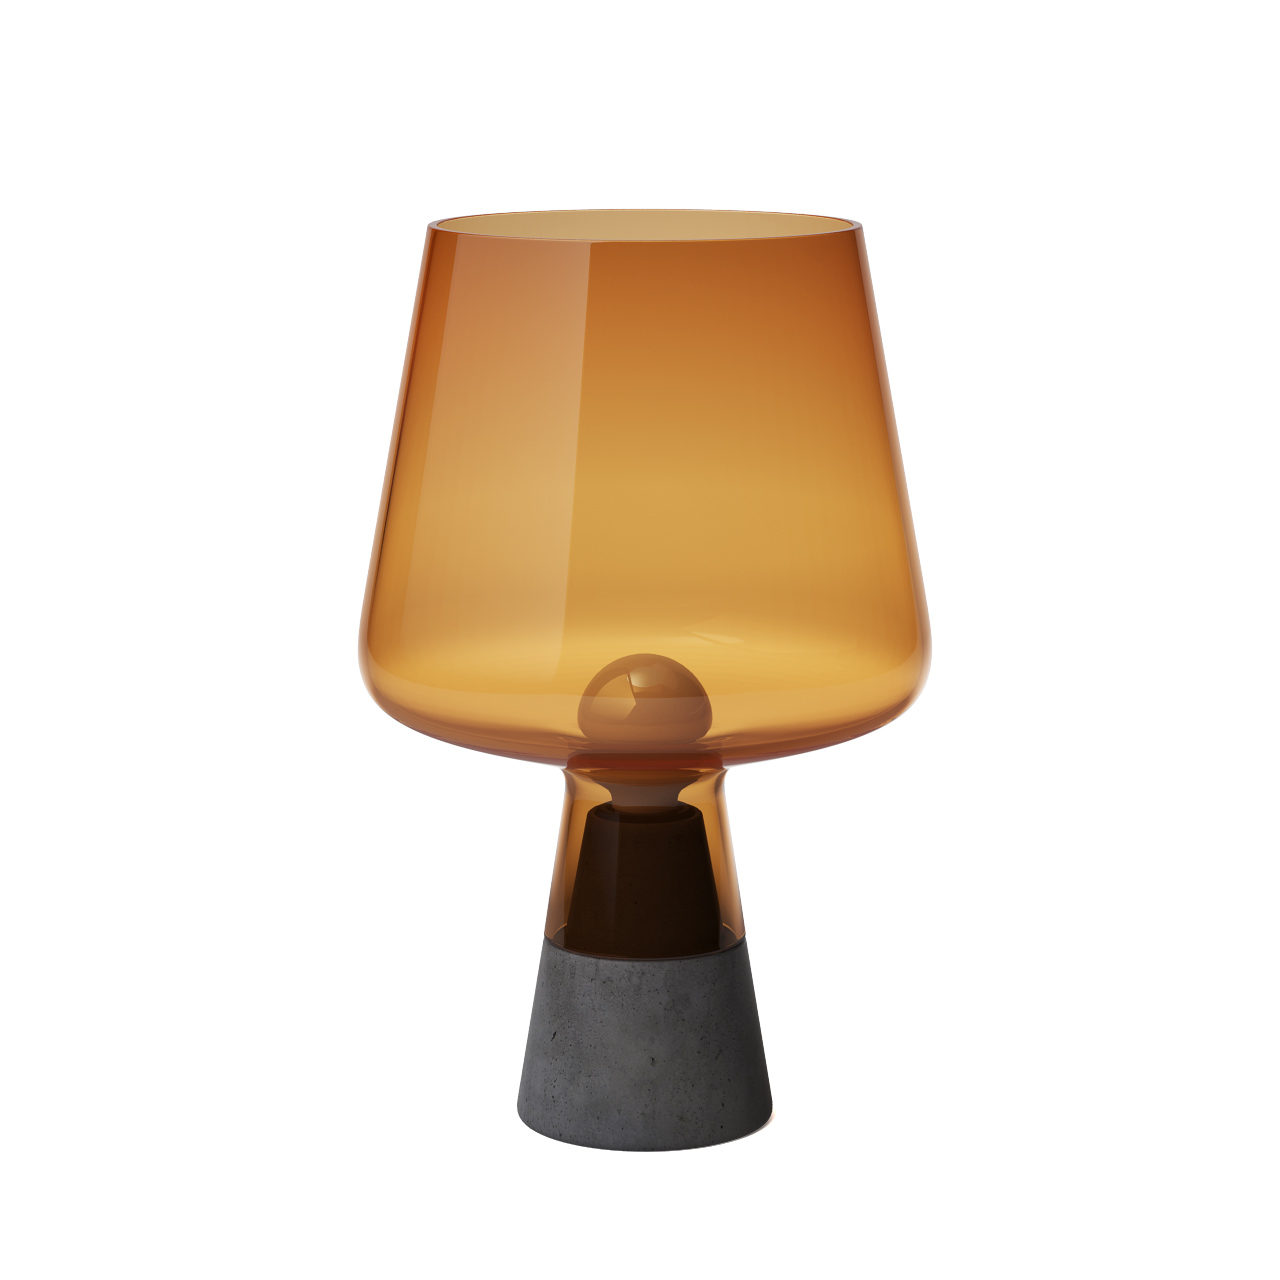 Leimu Lamp by Iittala